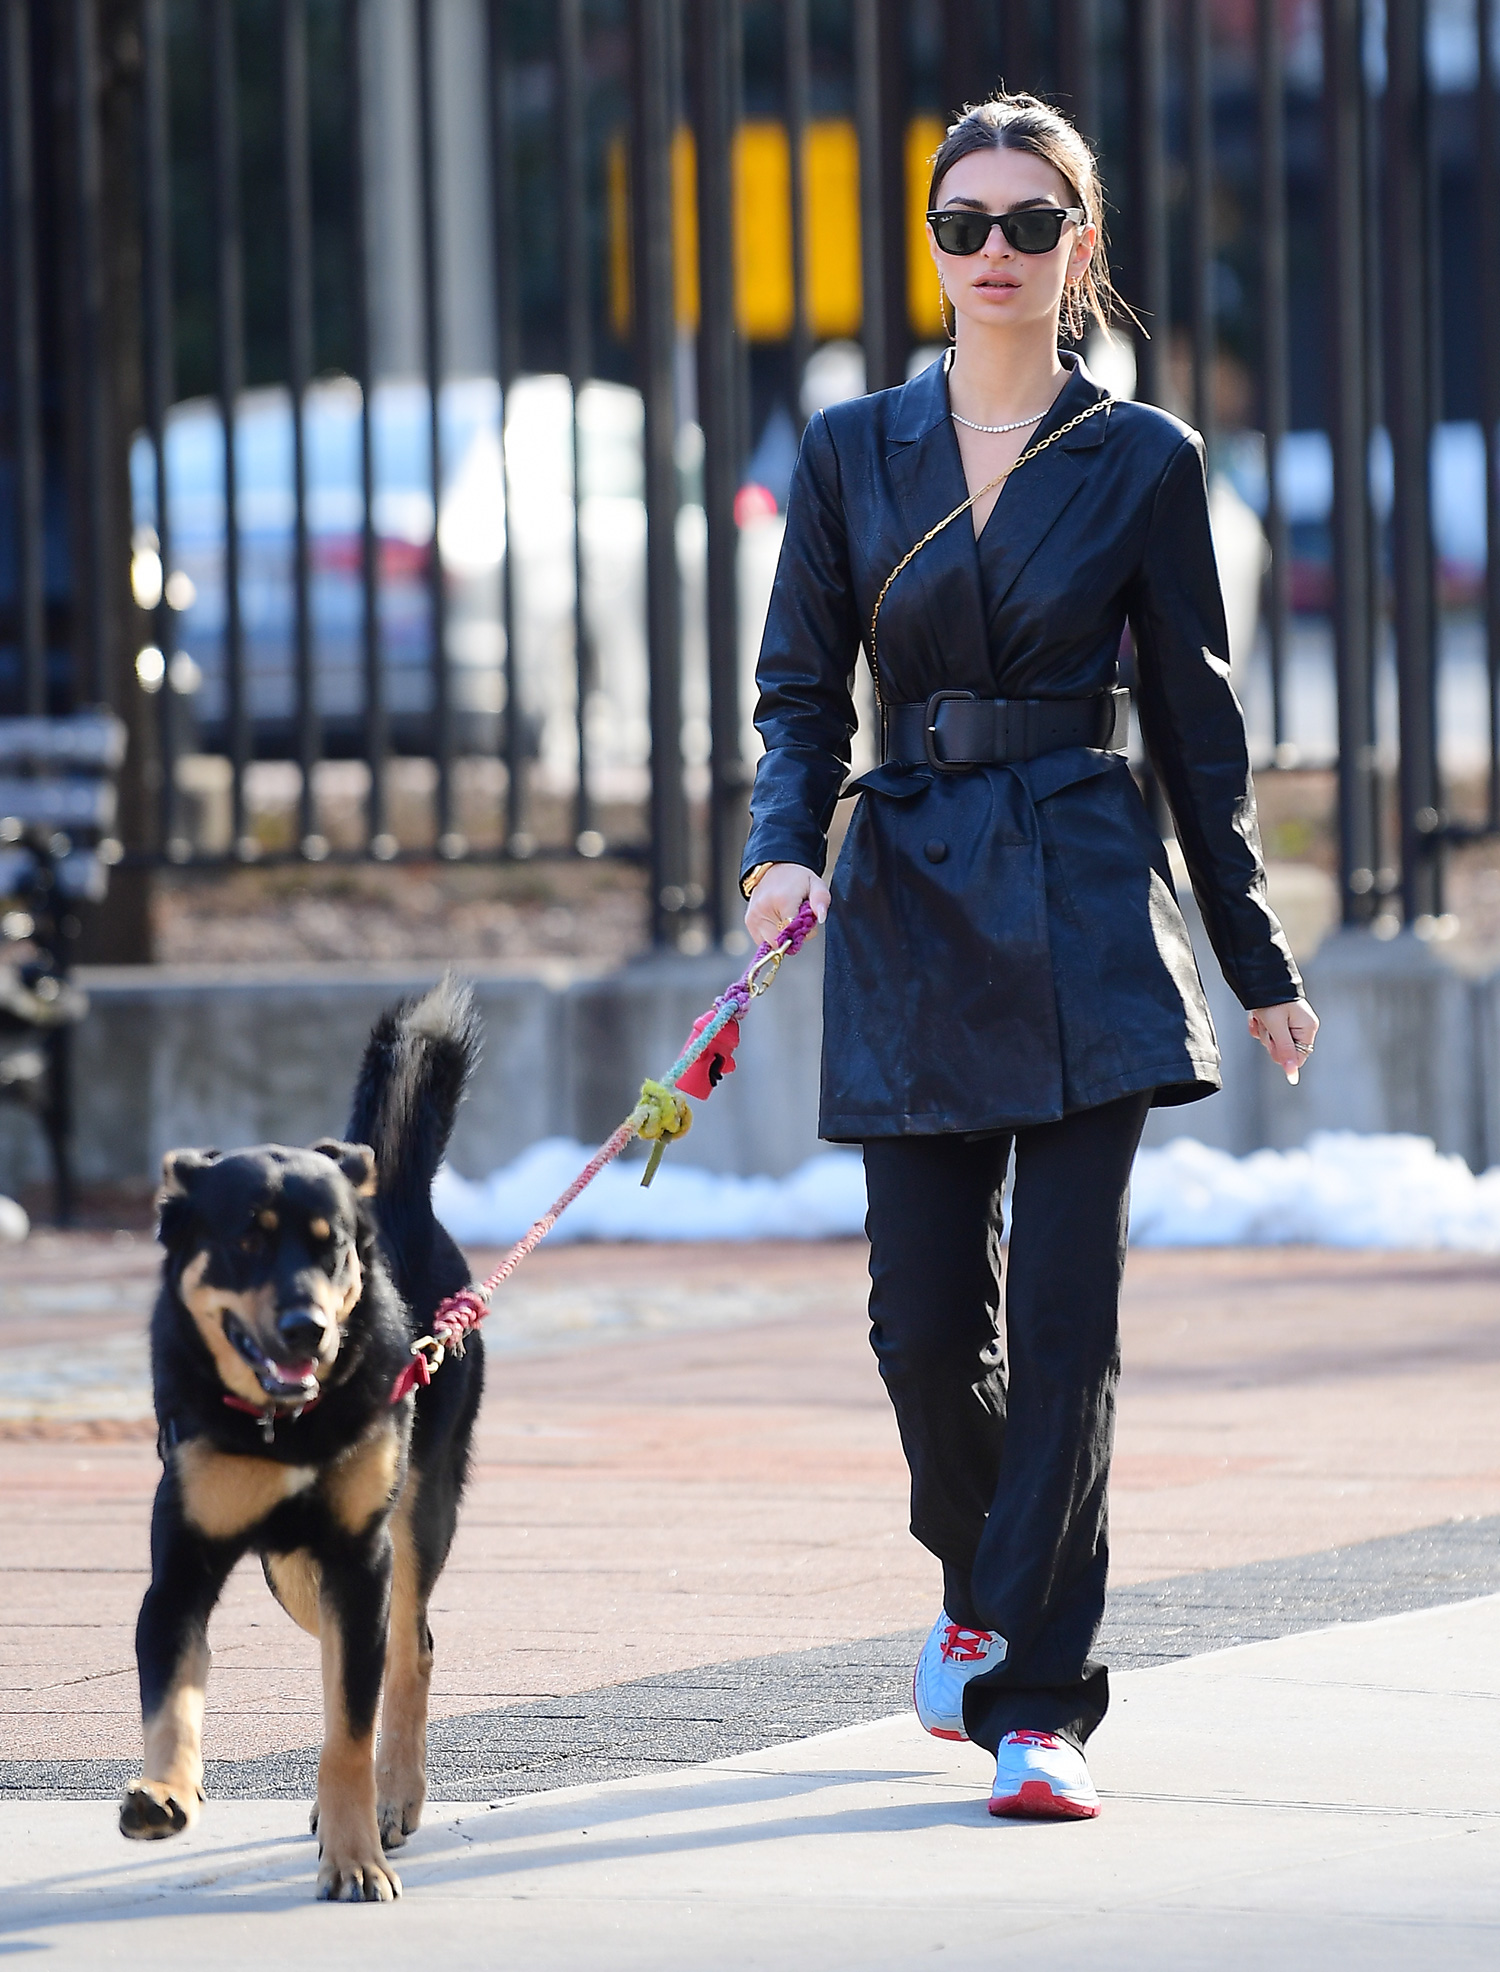 Emily Ratajkowski Walks her Dog Colombo in Black Belted Trench Coat and Sneakers